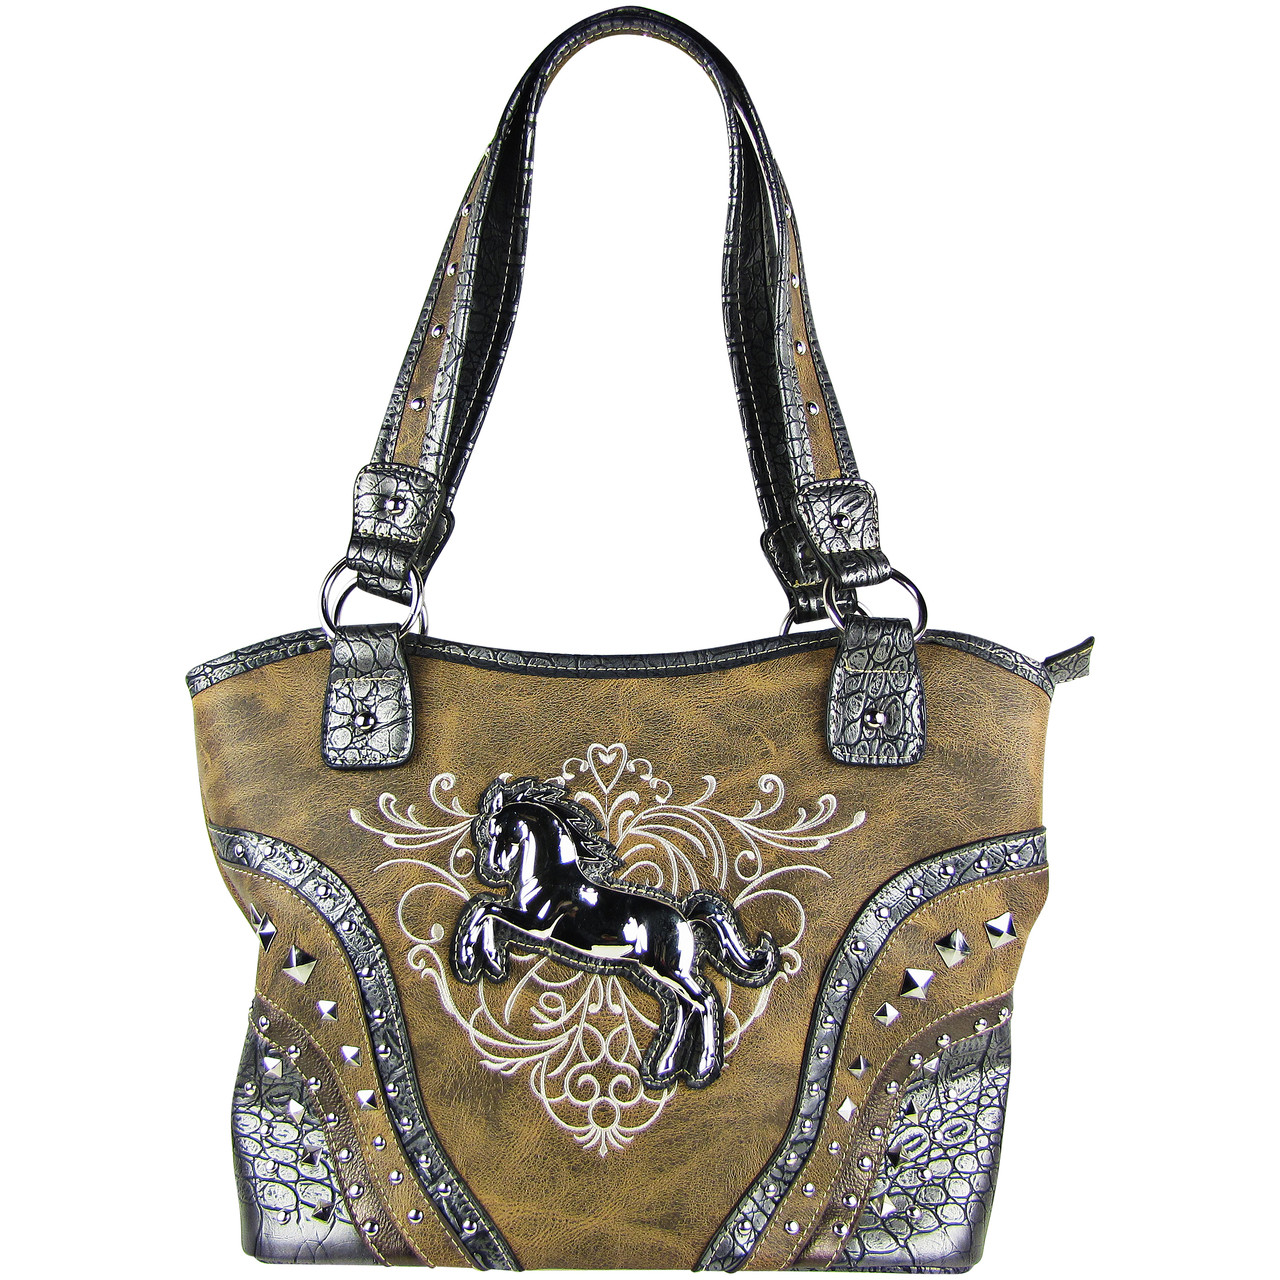 BROWN METAL HORSE WITH STITCHED DESIGN LOOK SHOULDER HANDBAG HB1-W22HSBRN